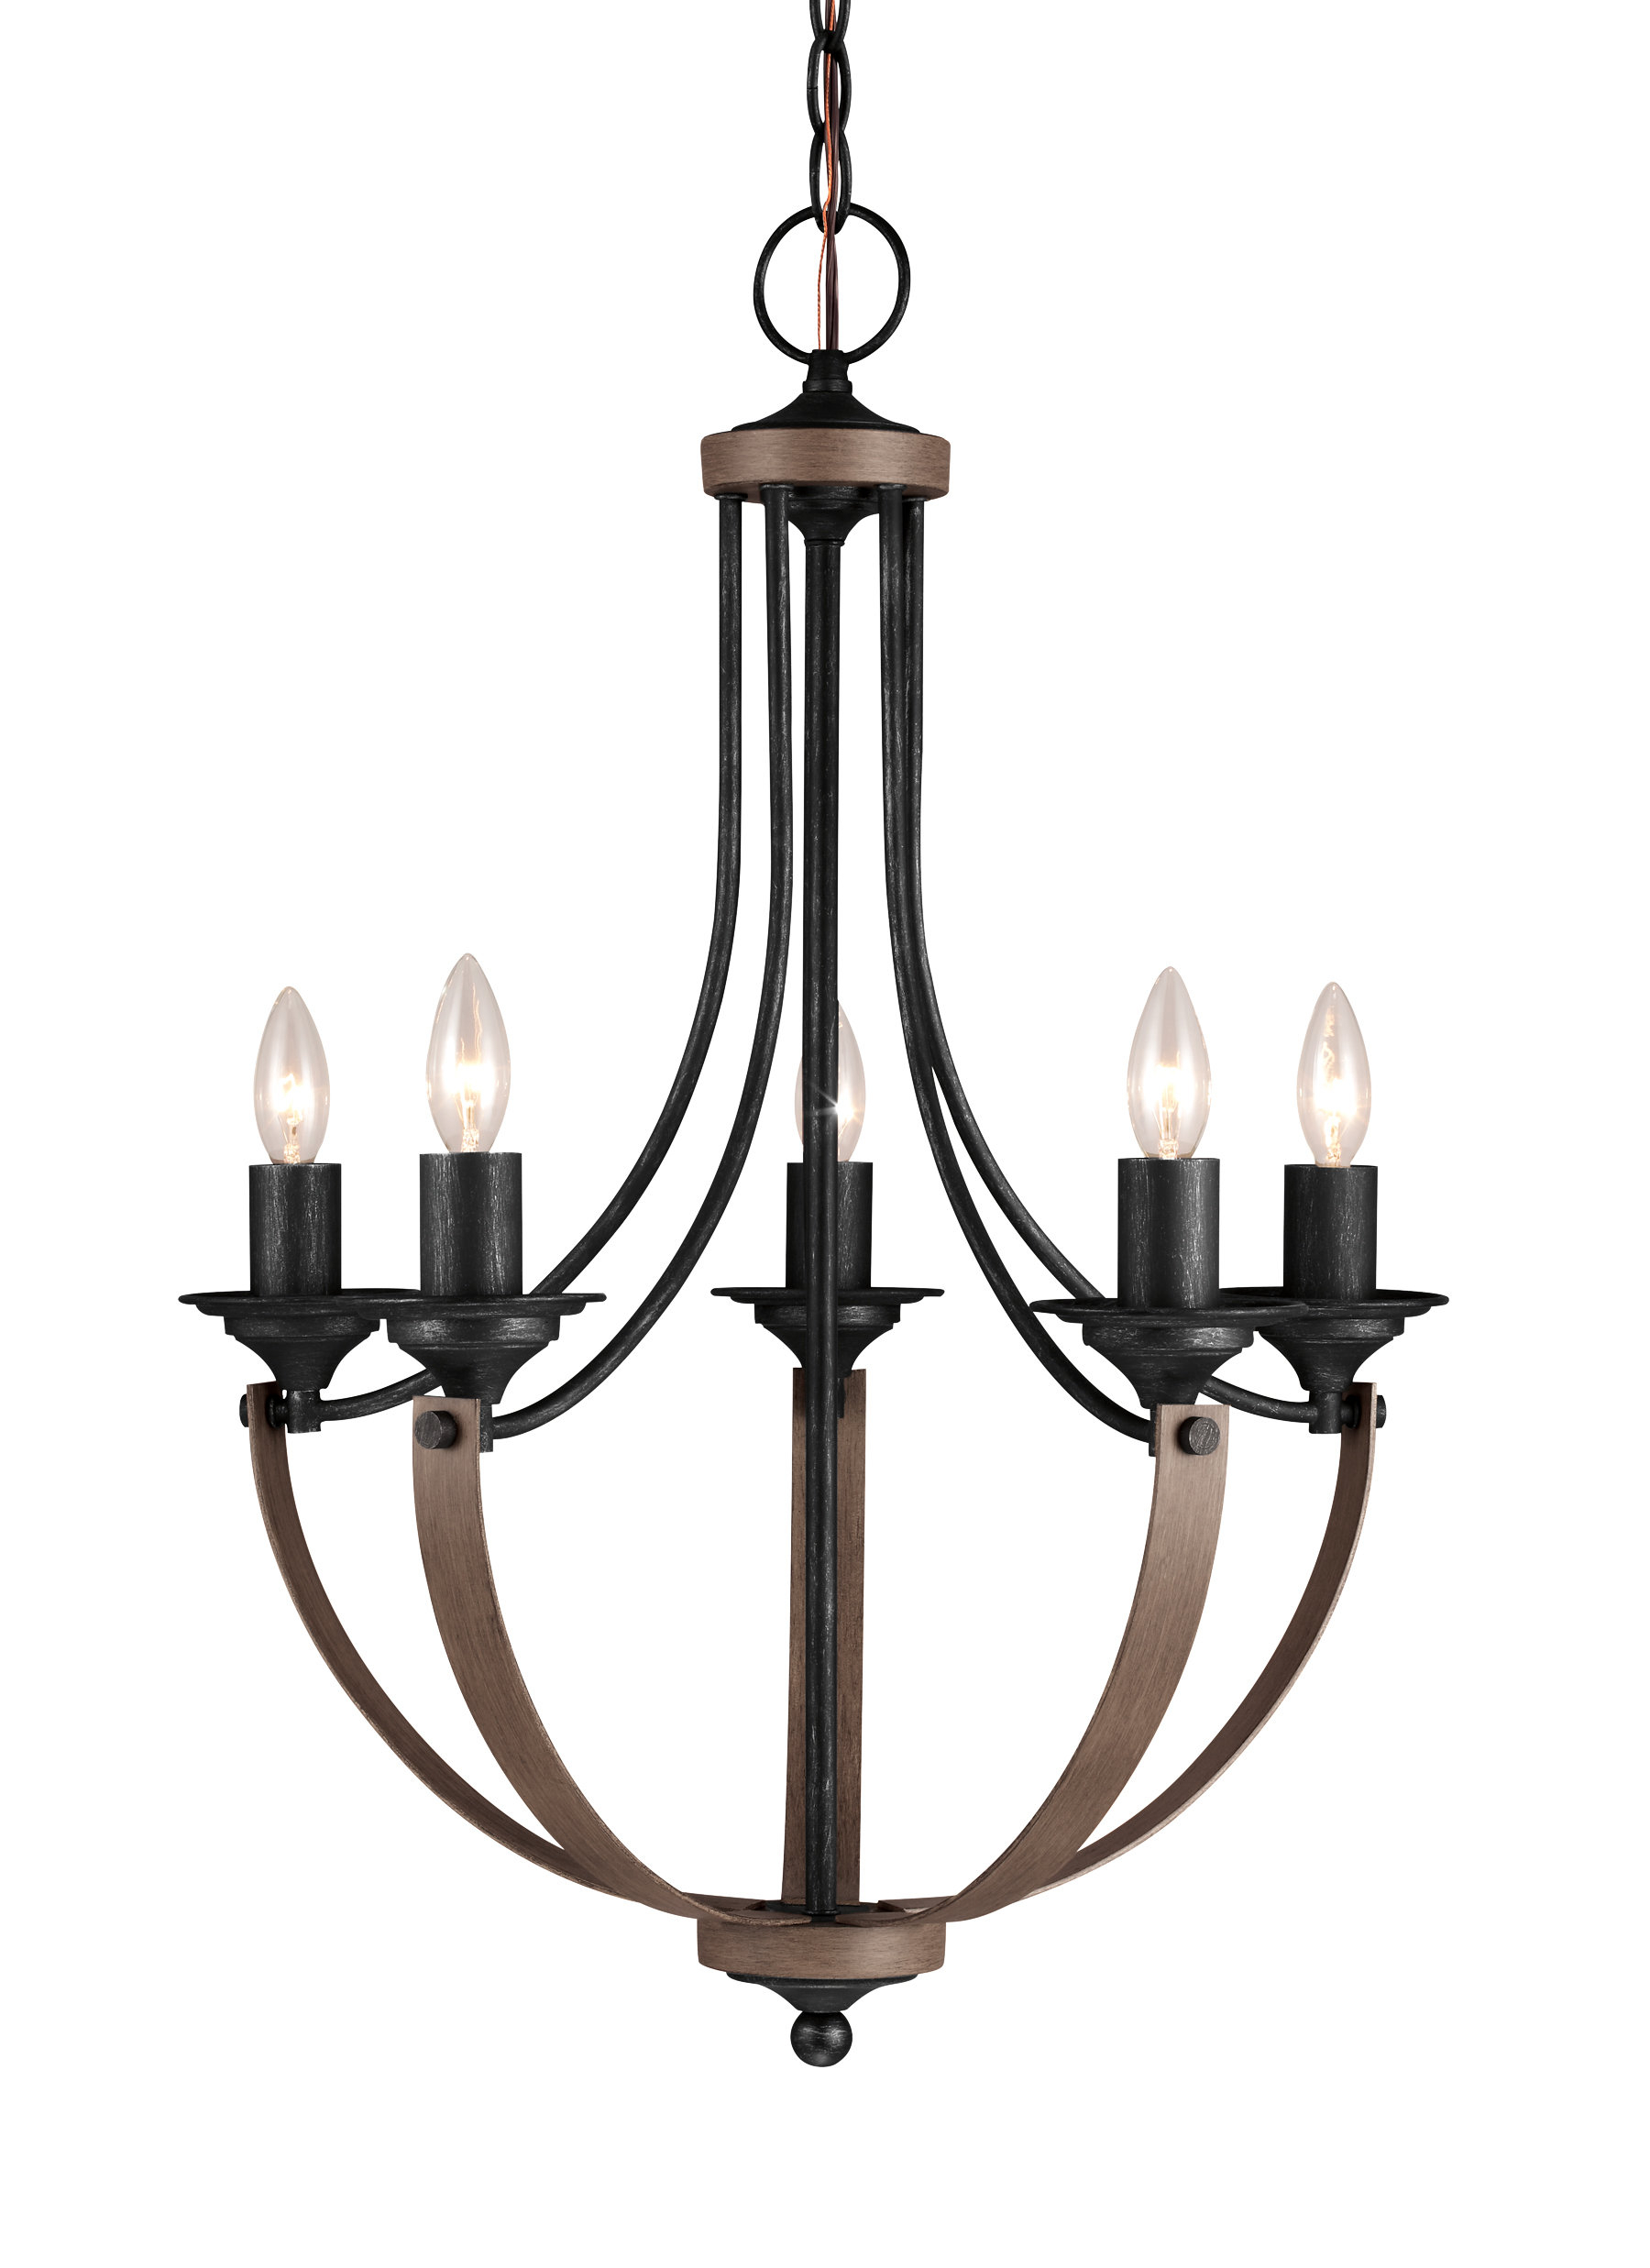 Kenna 5-Light Empire Chandelier with regard to Camilla 9-Light Candle Style Chandeliers (Image 15 of 30)